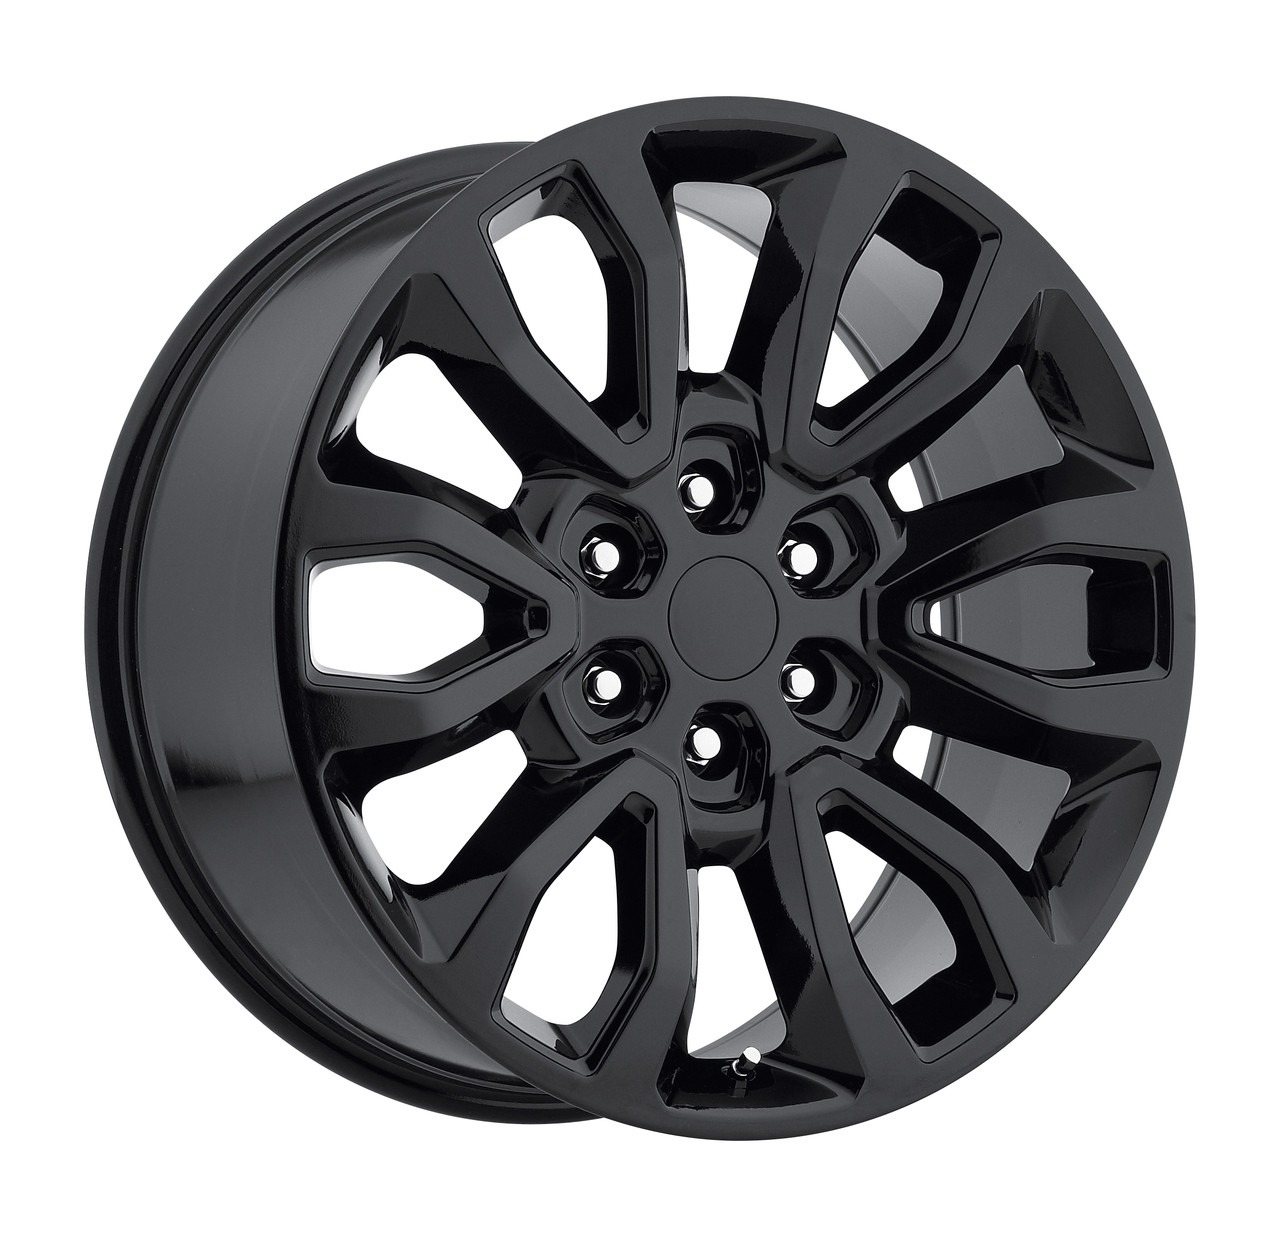 Ford F150 Wheels >> 20 Fits Ford F150 6 Lug Wheels Gloss Black Raptor Style Set Of 4 20x9 Rims